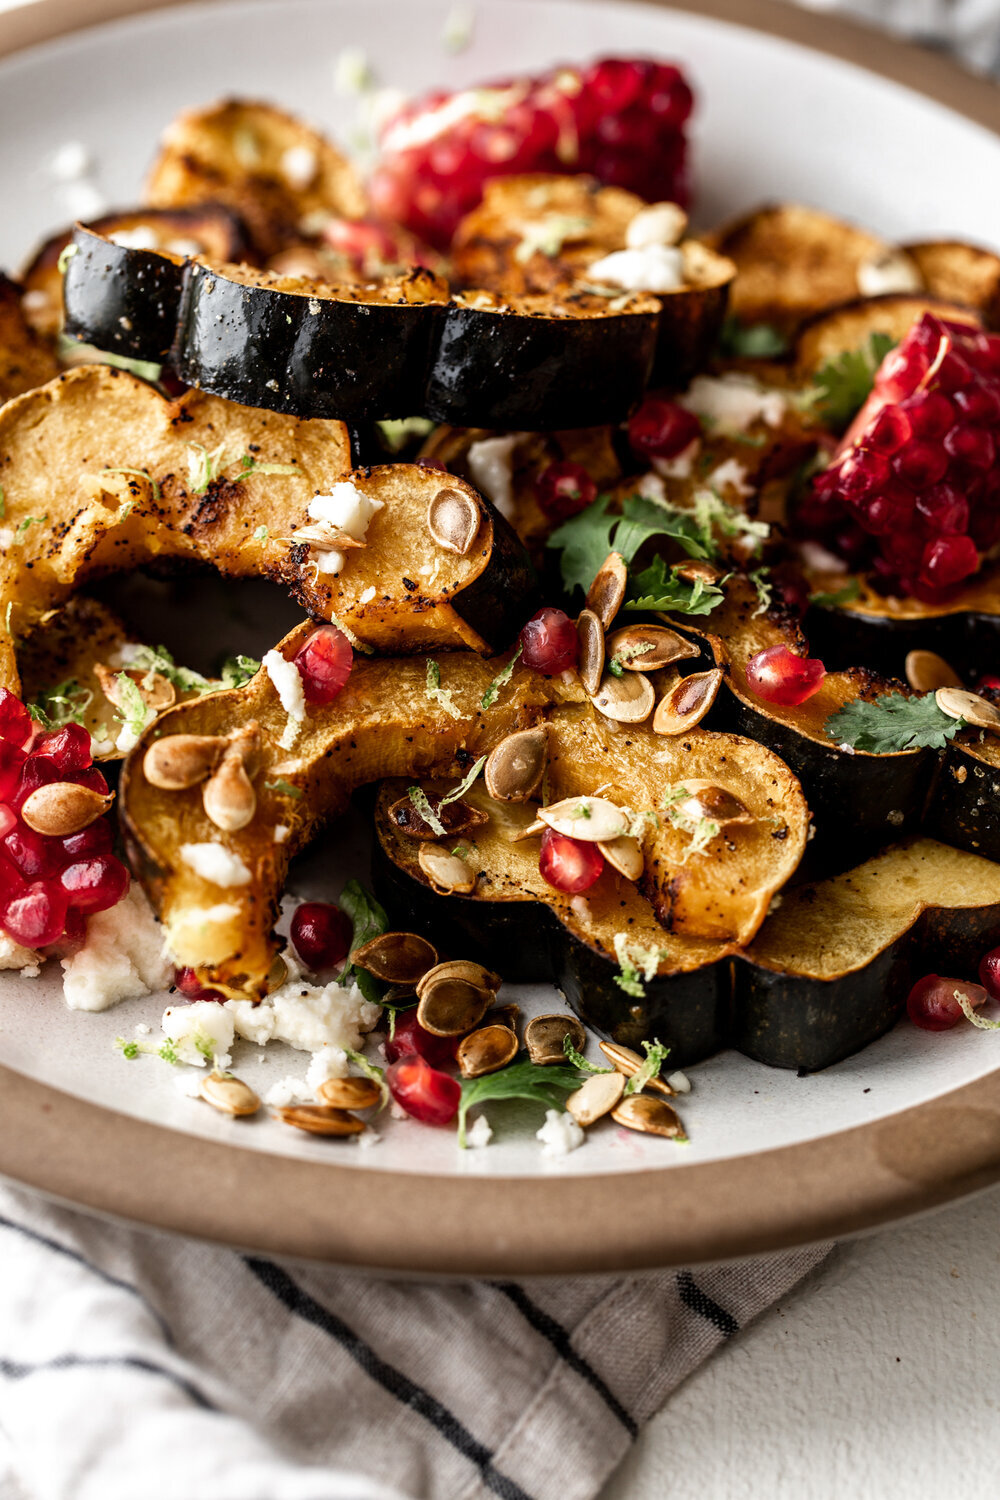 Ancho Chili Roasted Acorn Squash with Queso